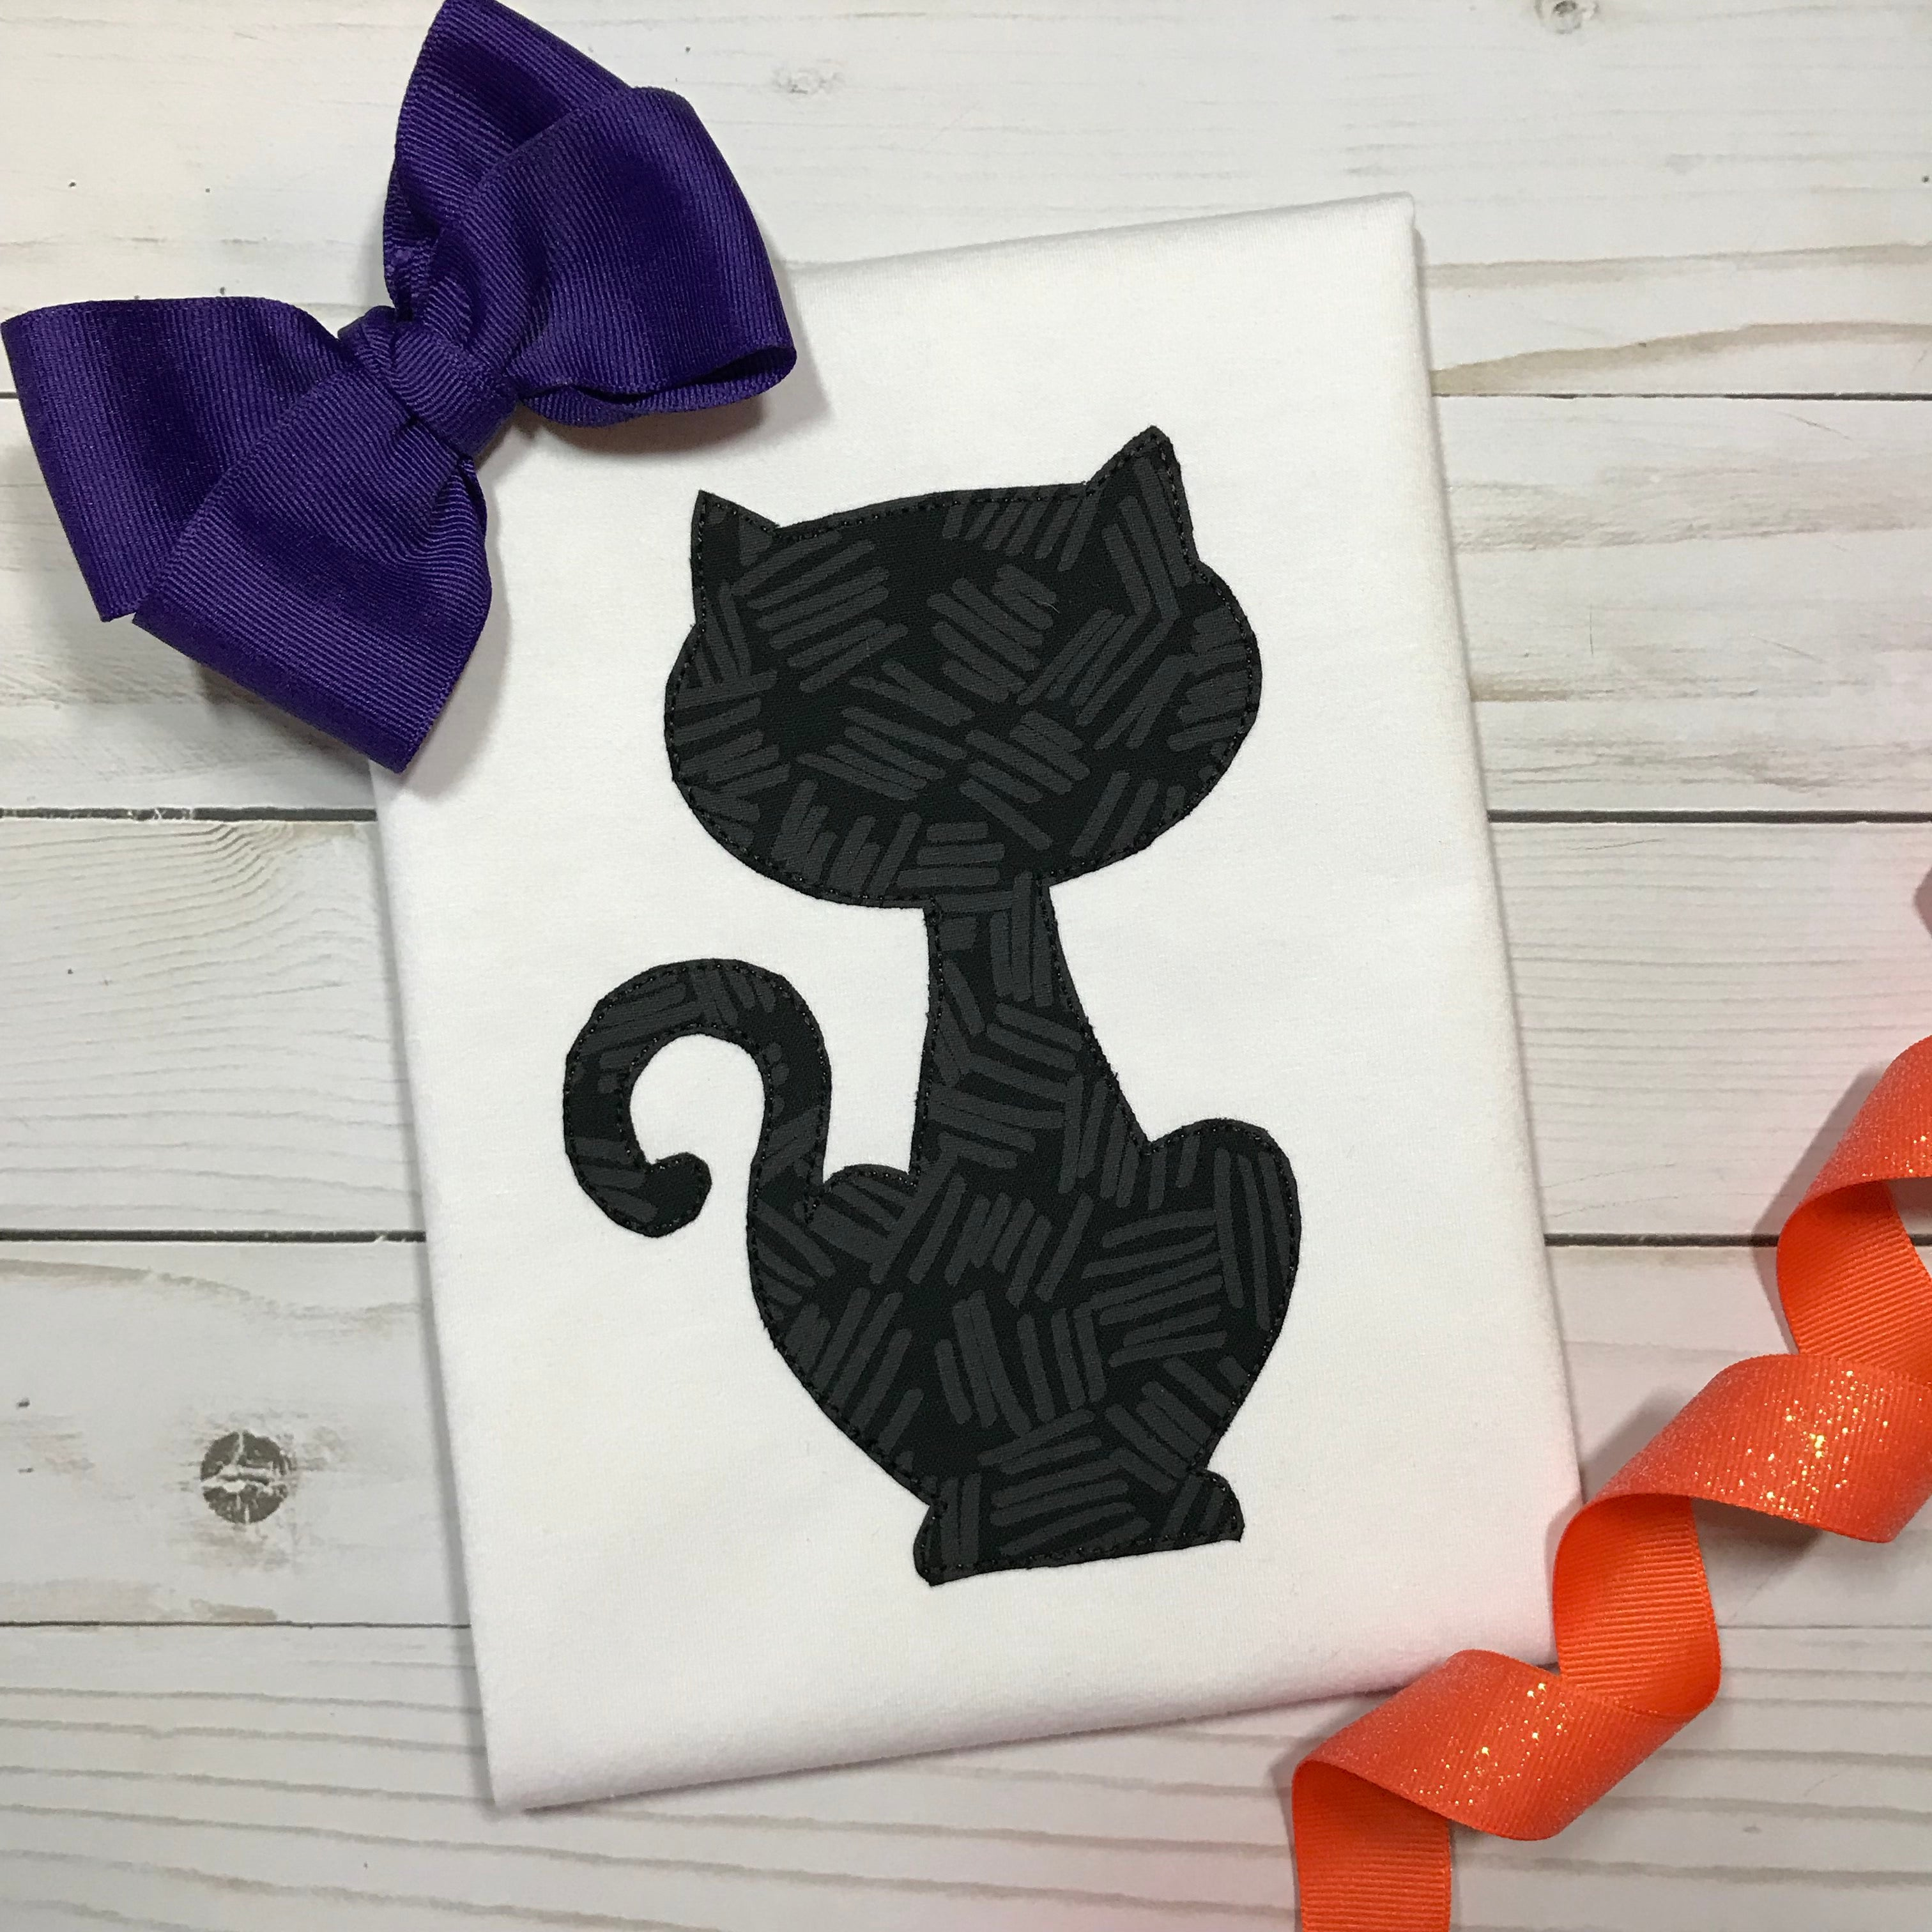 Black Cat Bean Stitch - Hug A Bug Applique Designs